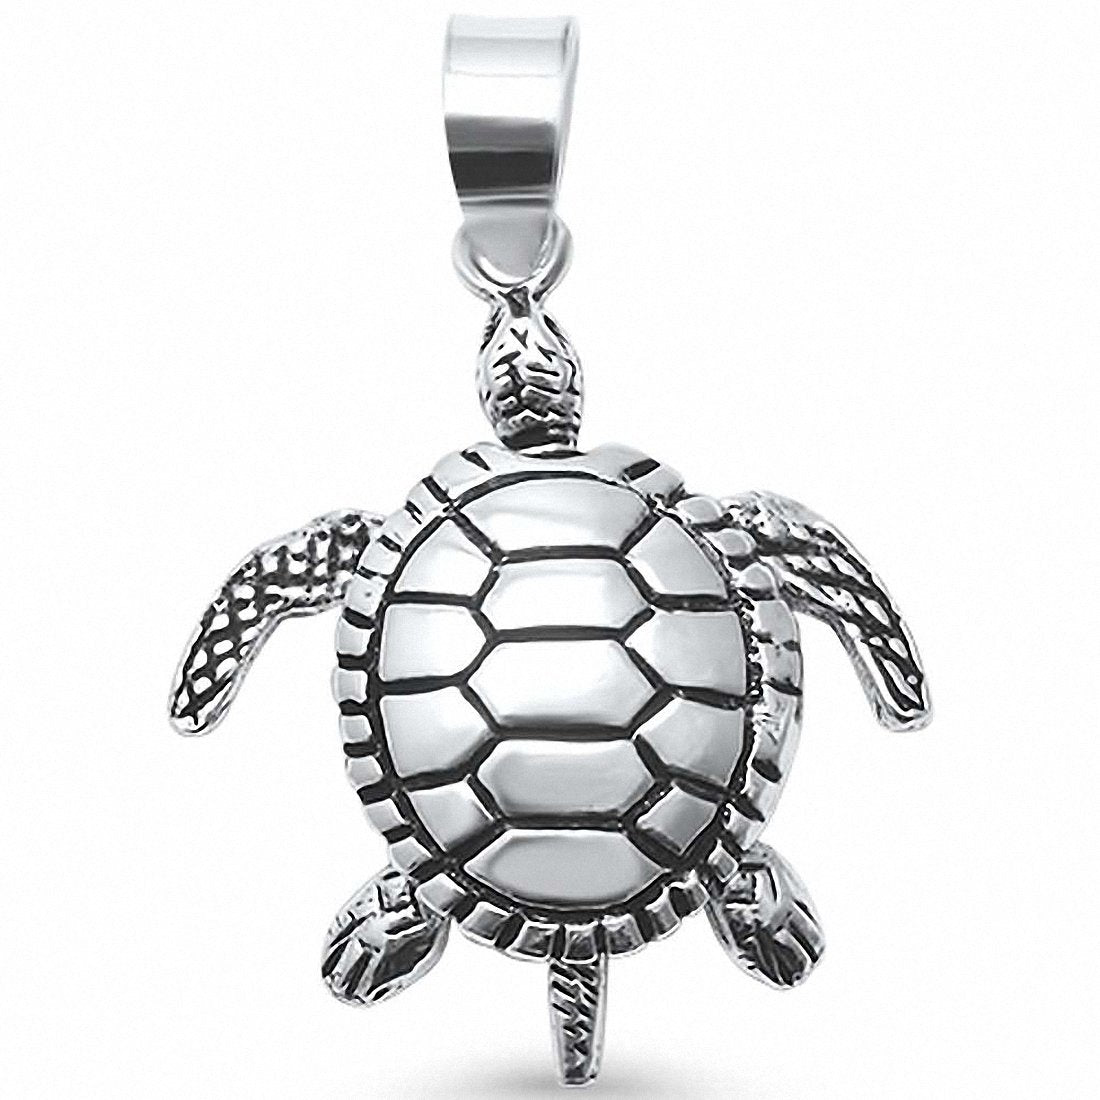 Moving Turtle Pendant Charm 925 Sterling Silver Choose Color